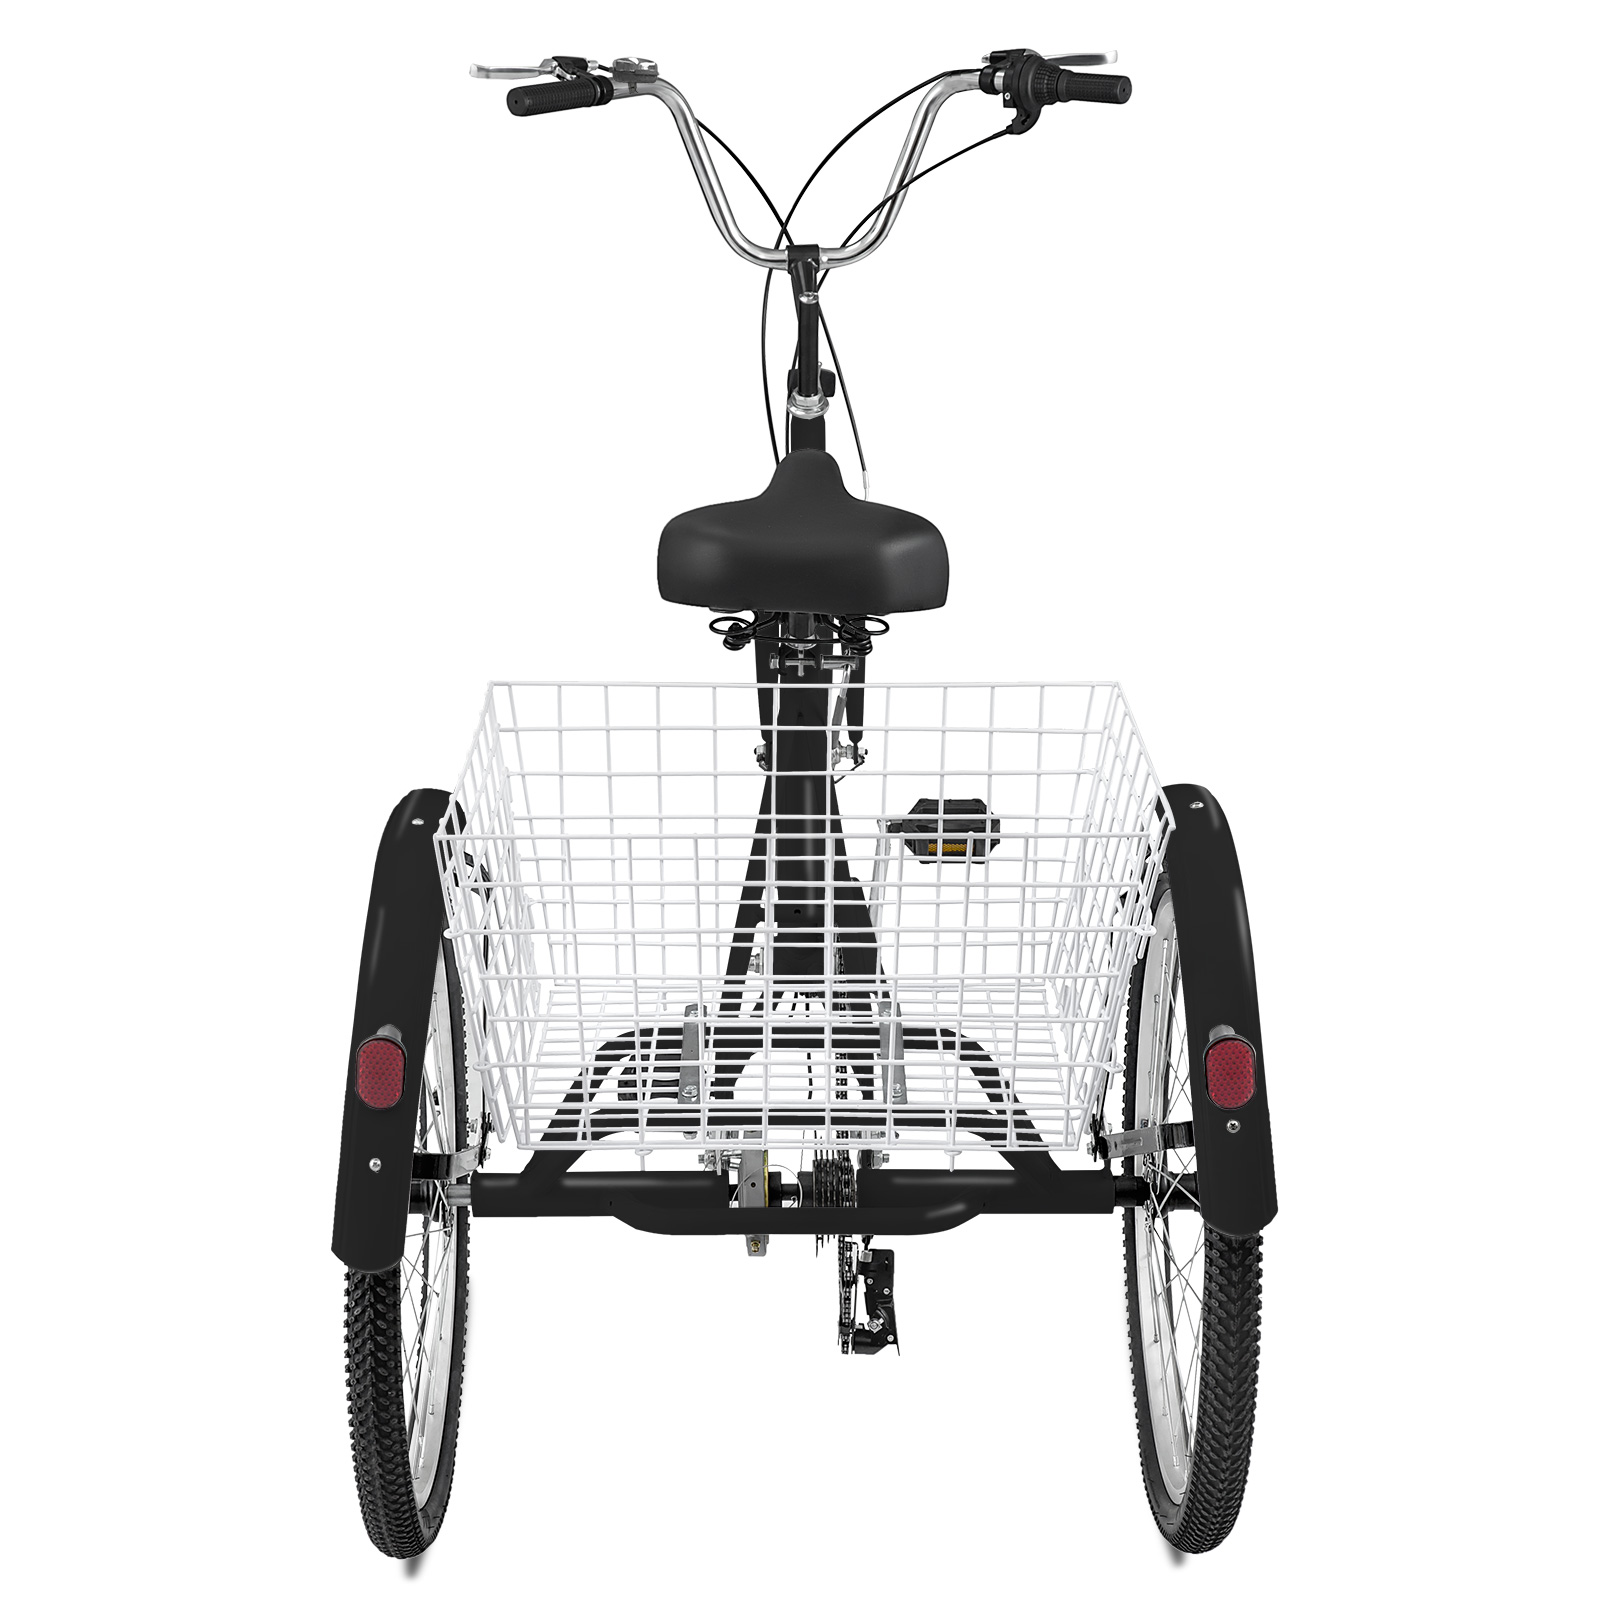 20-24-26-034-Adult-Tricycle-1-7-Speed-3-Wheel-Large-Basket-For-Shopping-Optional thumbnail 264